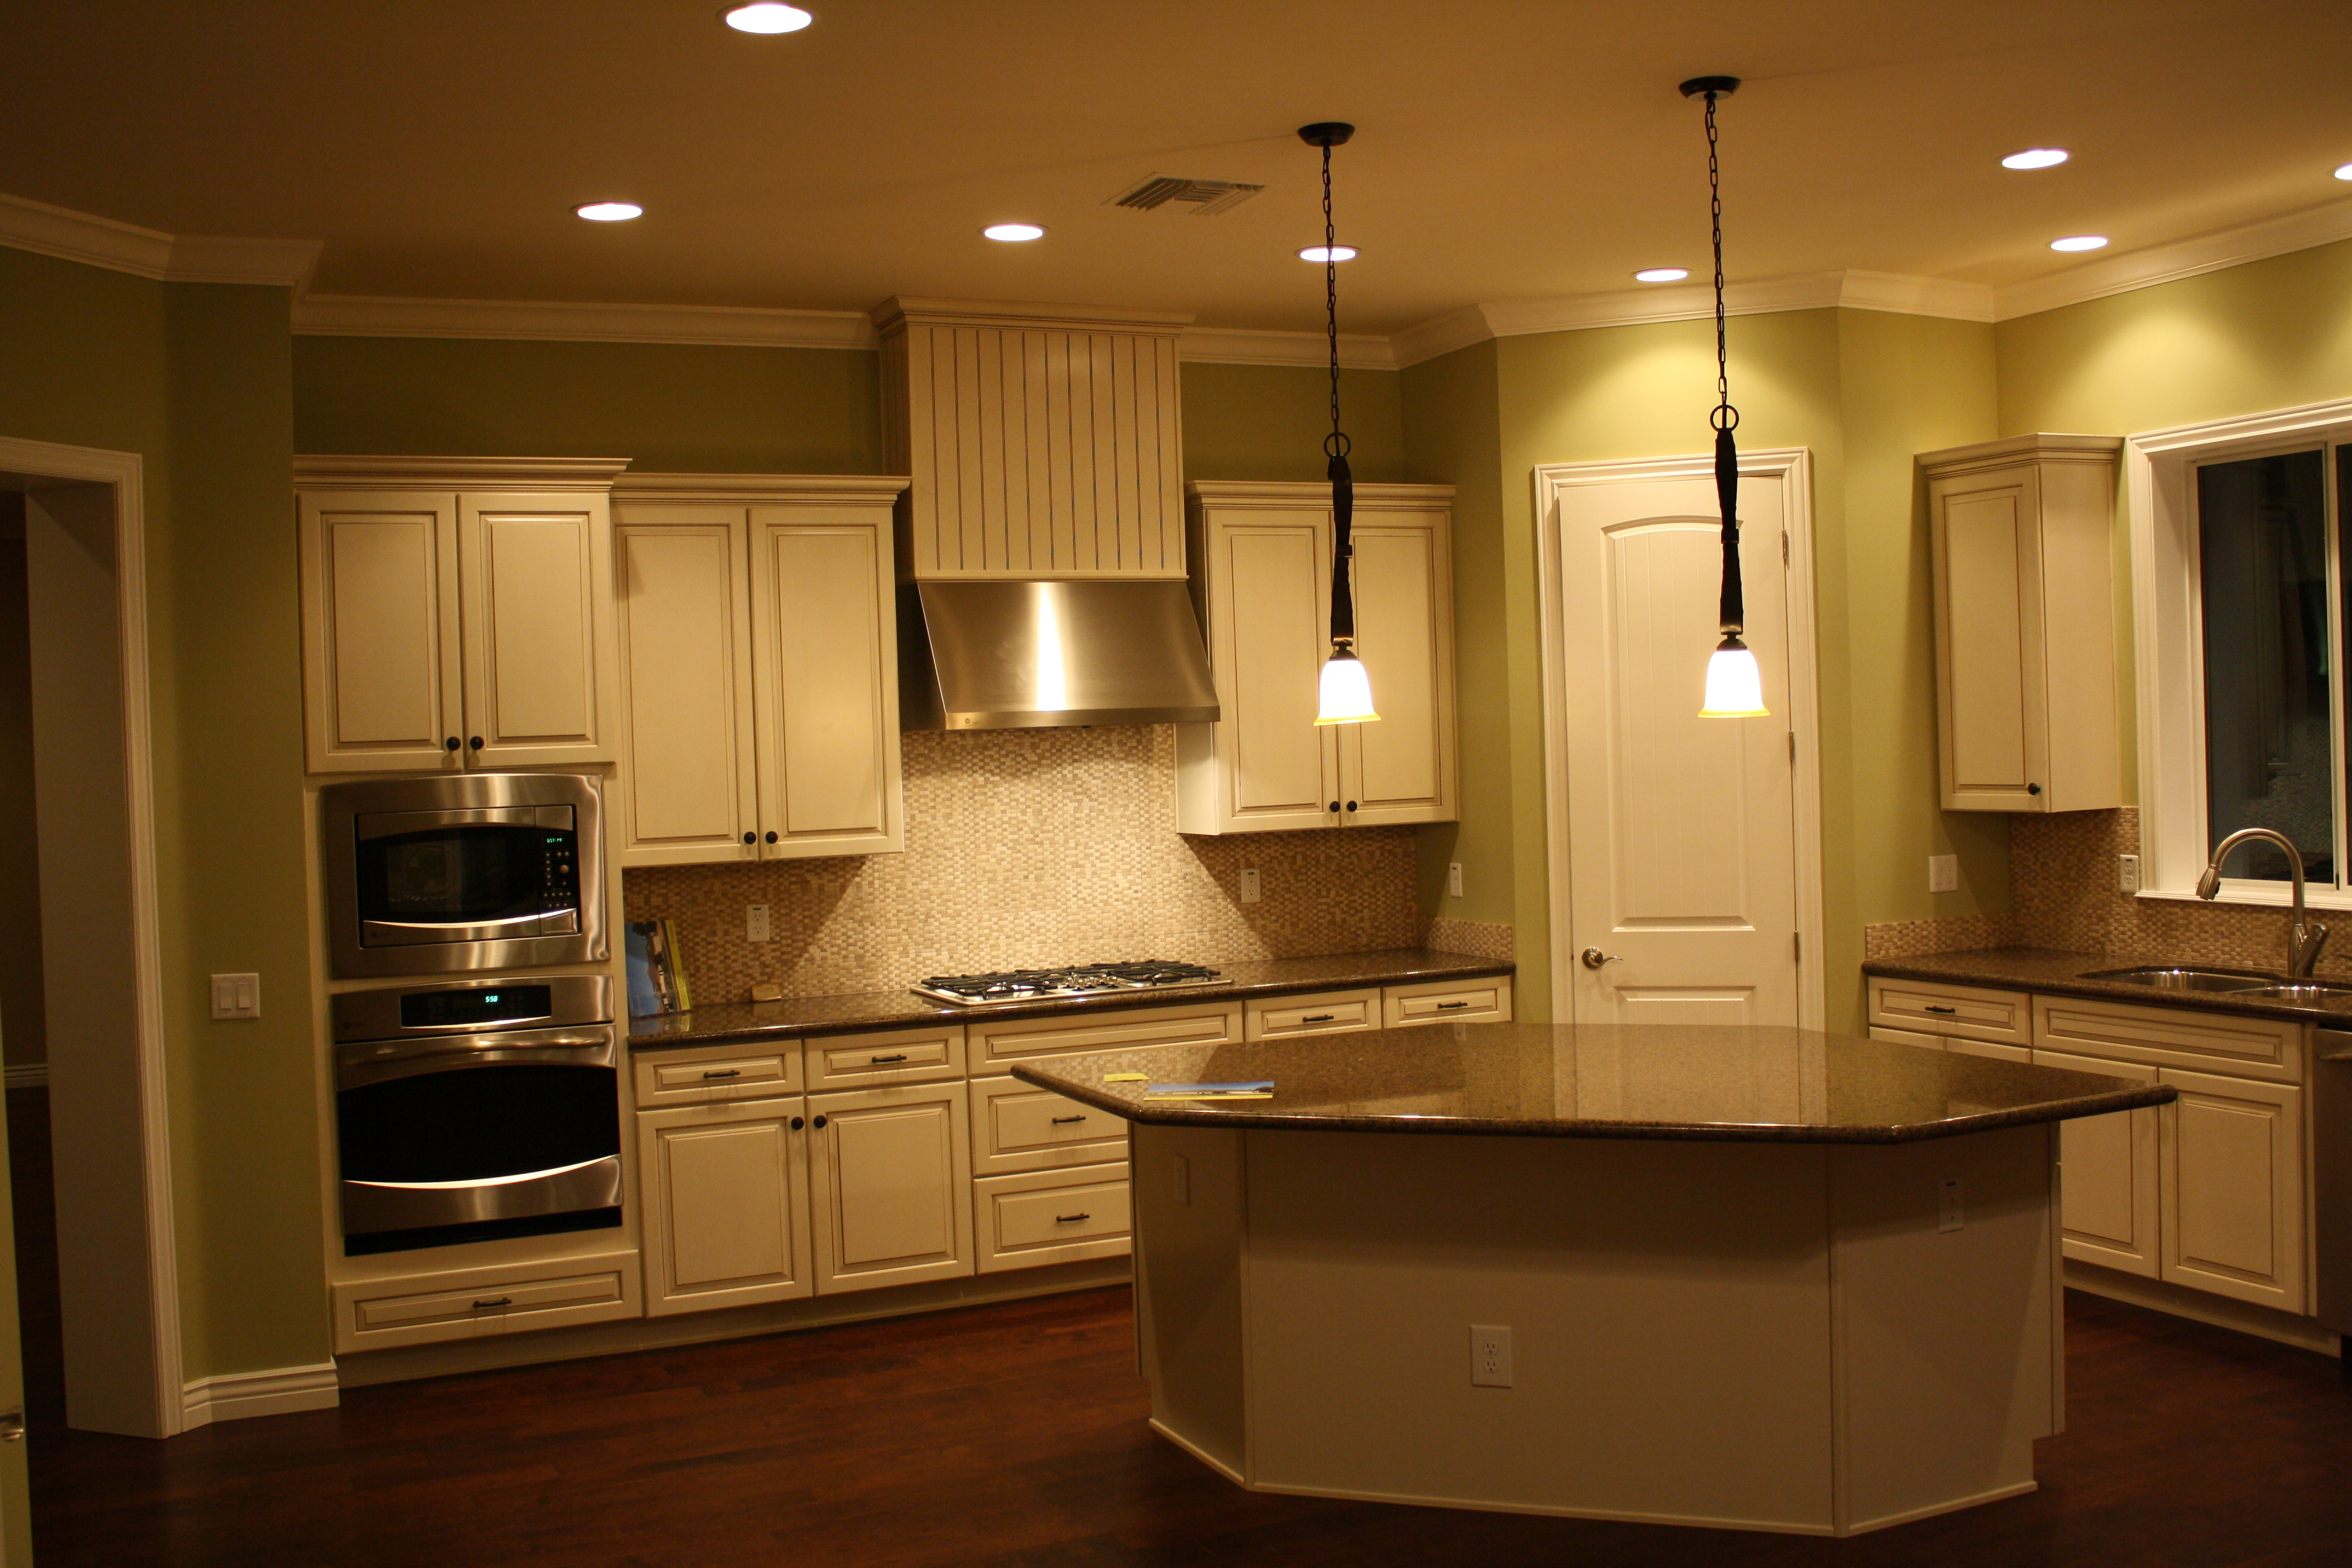 Calle Tuberia | Coventry Kitchens & Closets - Custom Kitchen and ...